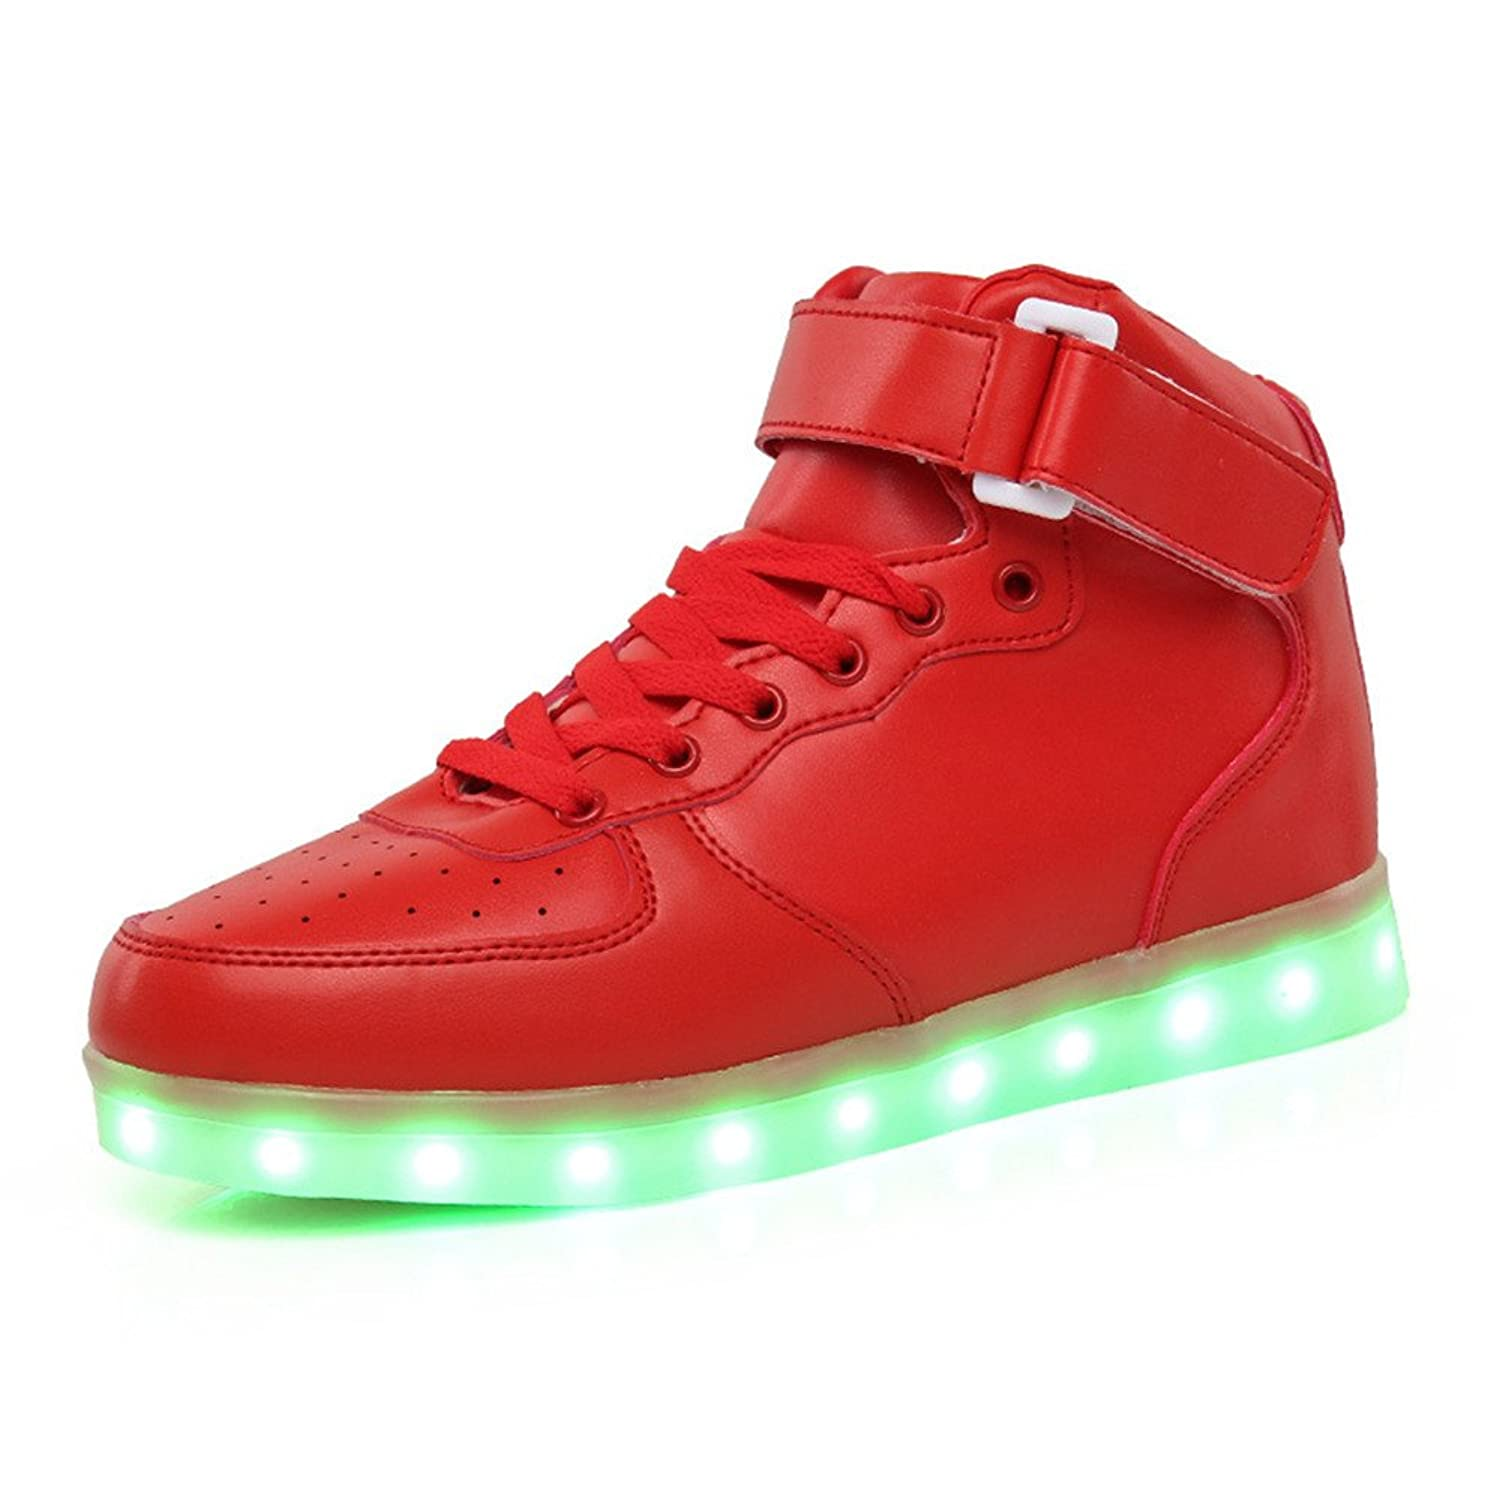 9d57f6476581cf AnnabelZ LED Shoes High Top Men Women Light Up Shoes USB Charging Flashing  Sneakers Gold Silver